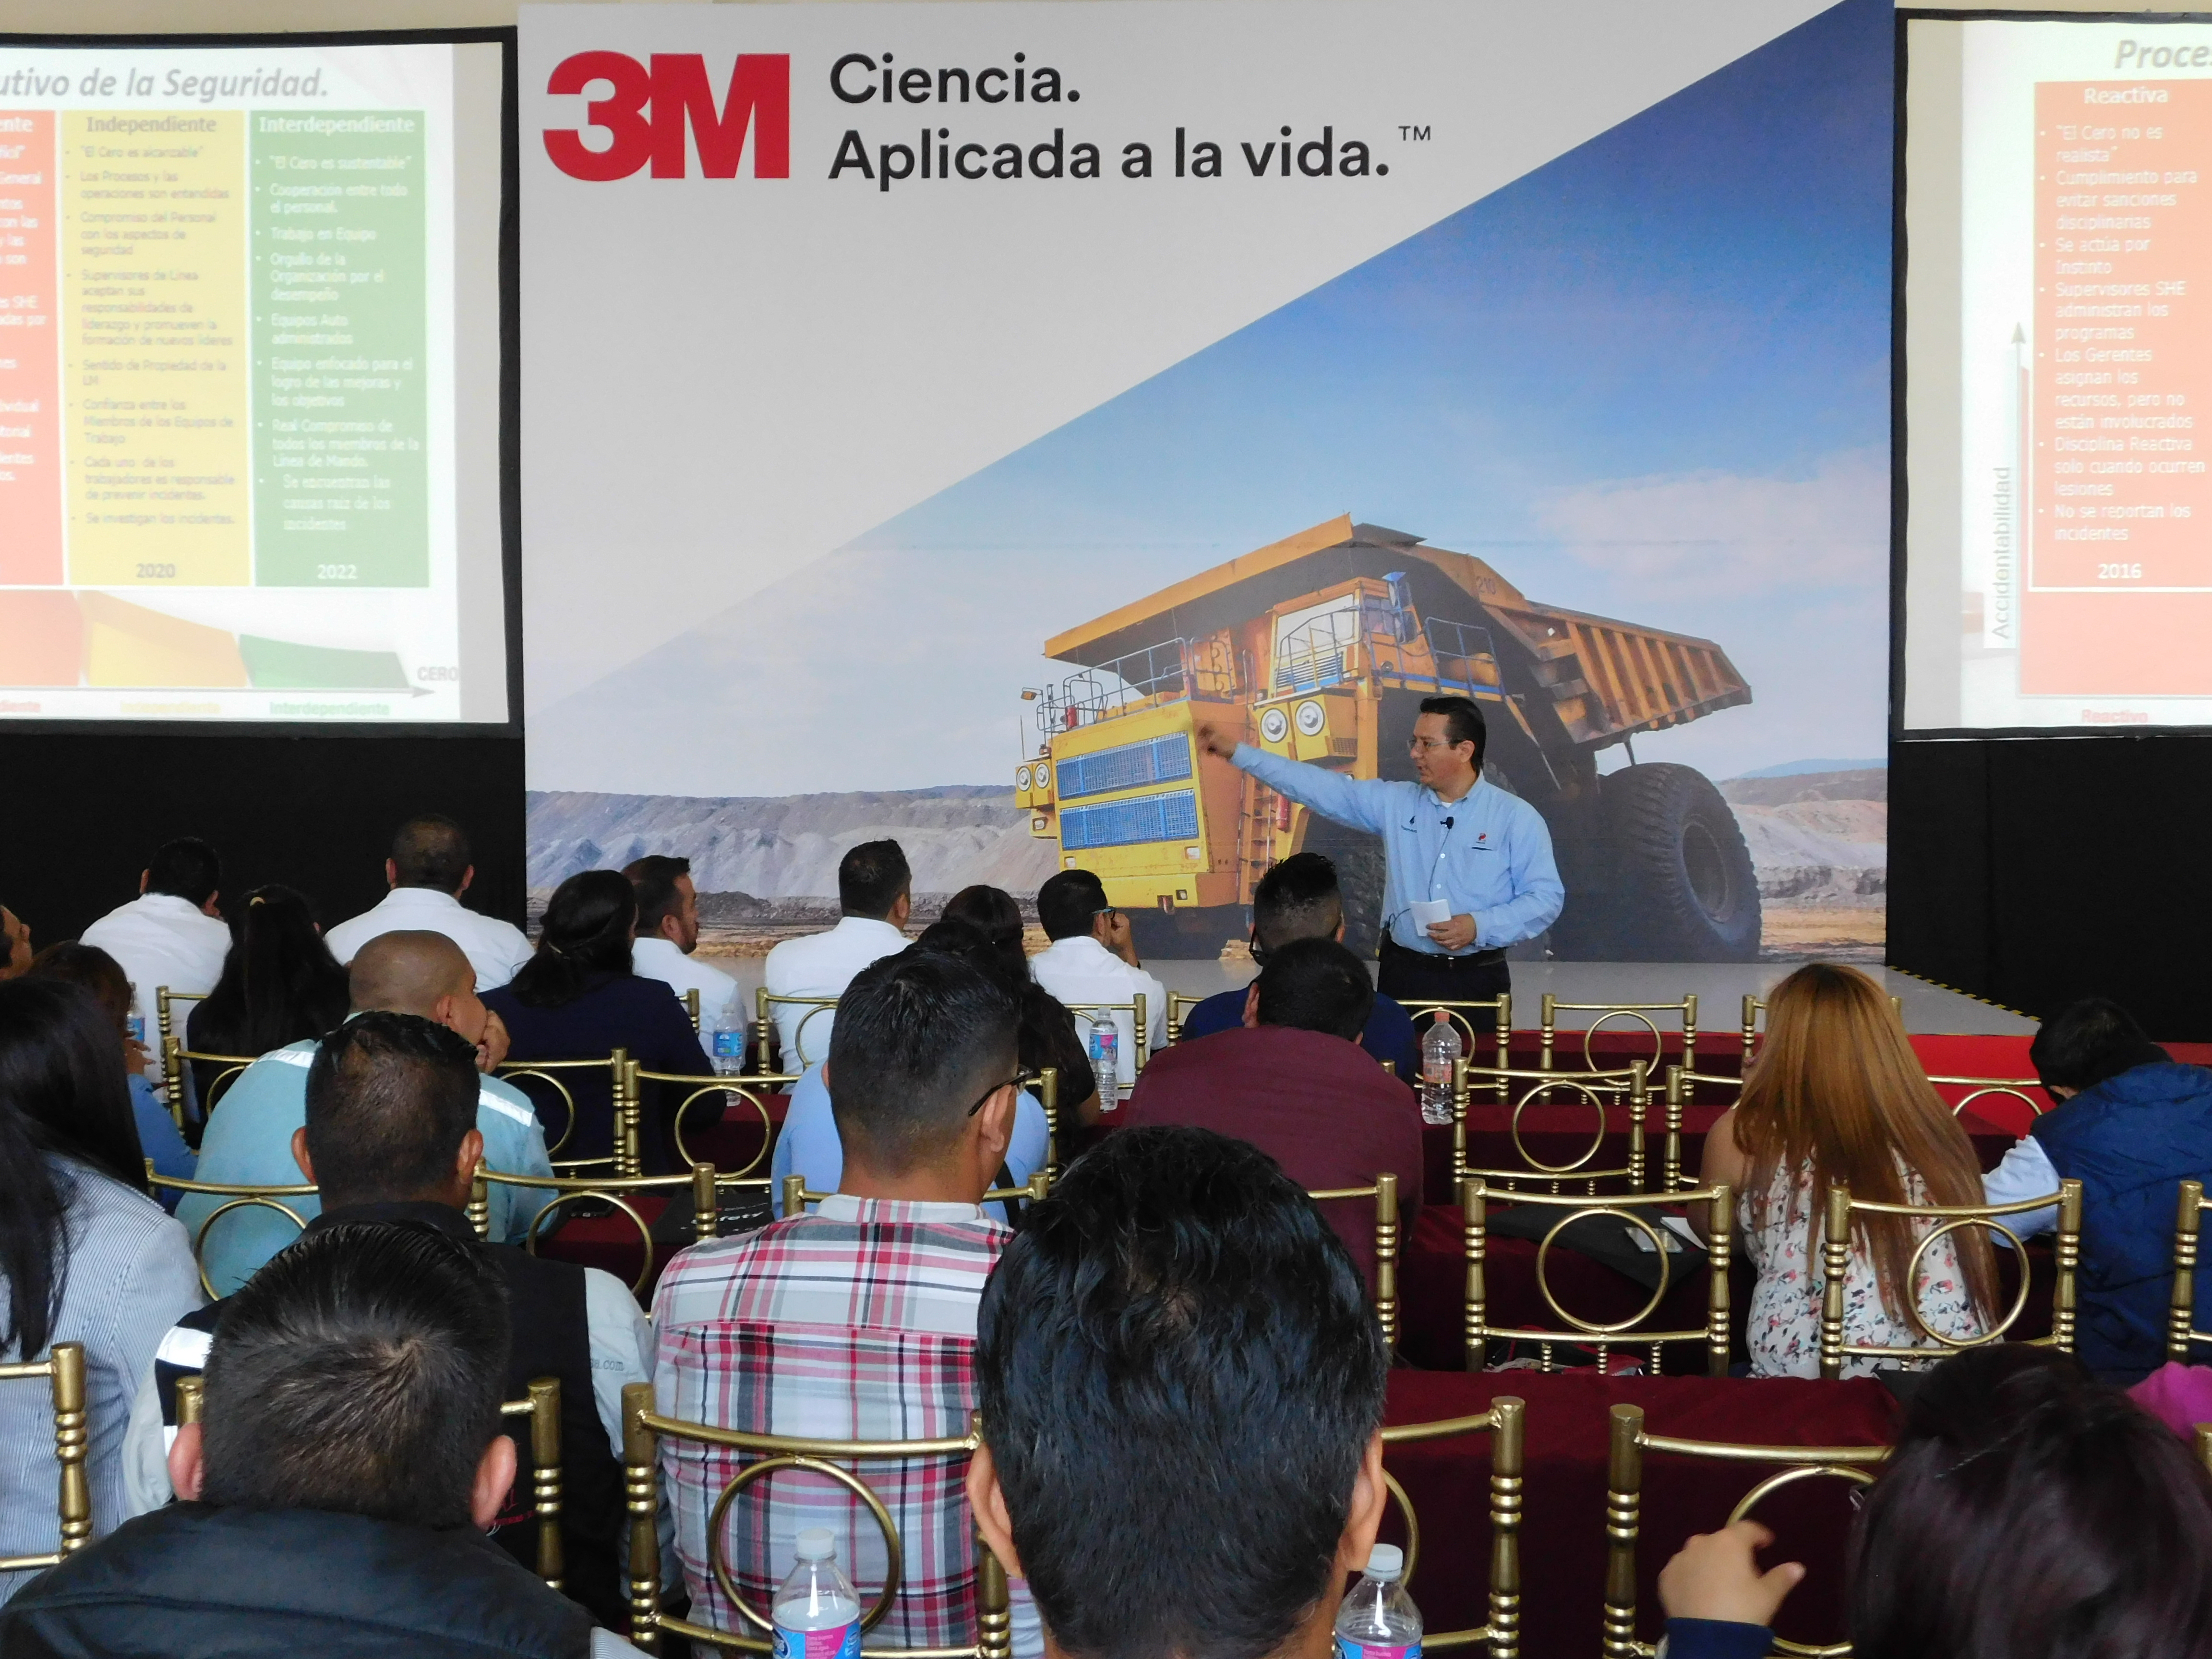 Safety Tour: Seminario sobre seguridad para el sector minero en Zacatecas